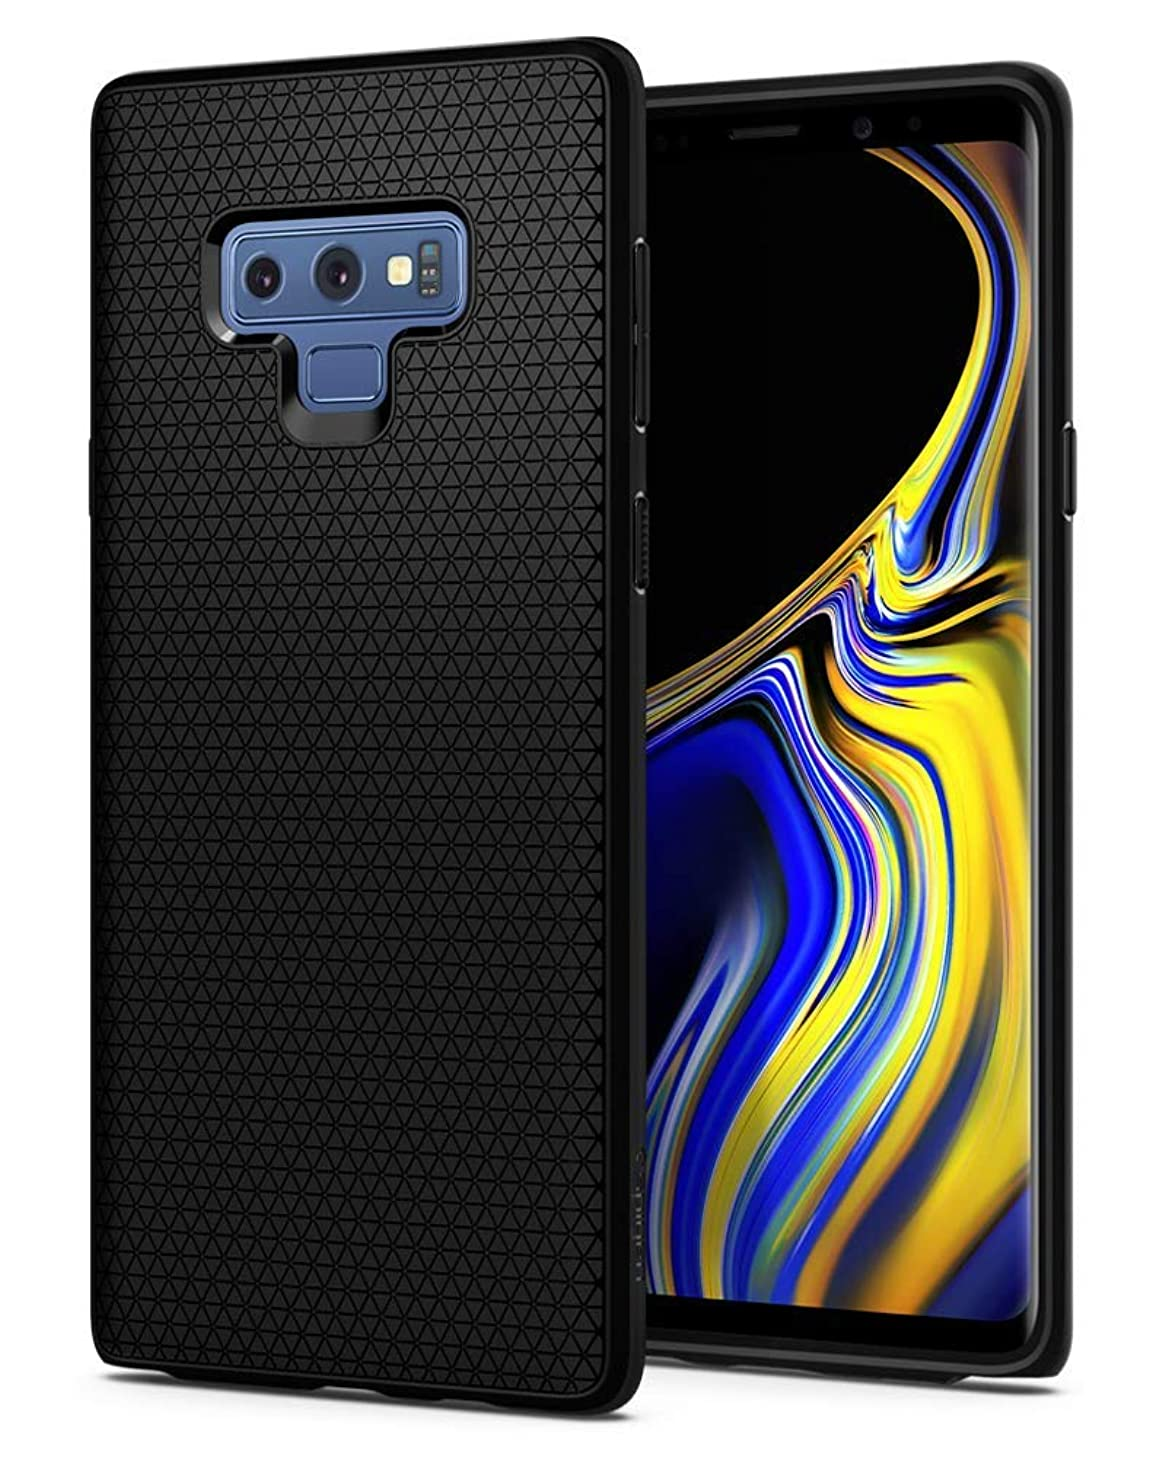 Compatible Case for Samsung Galaxy Note9 Note 9 2018 2019 Unique Premium Luxury Alcantara Style Cover Durable and Resistant Shock Absorption Drop Protection Defender Series - Black